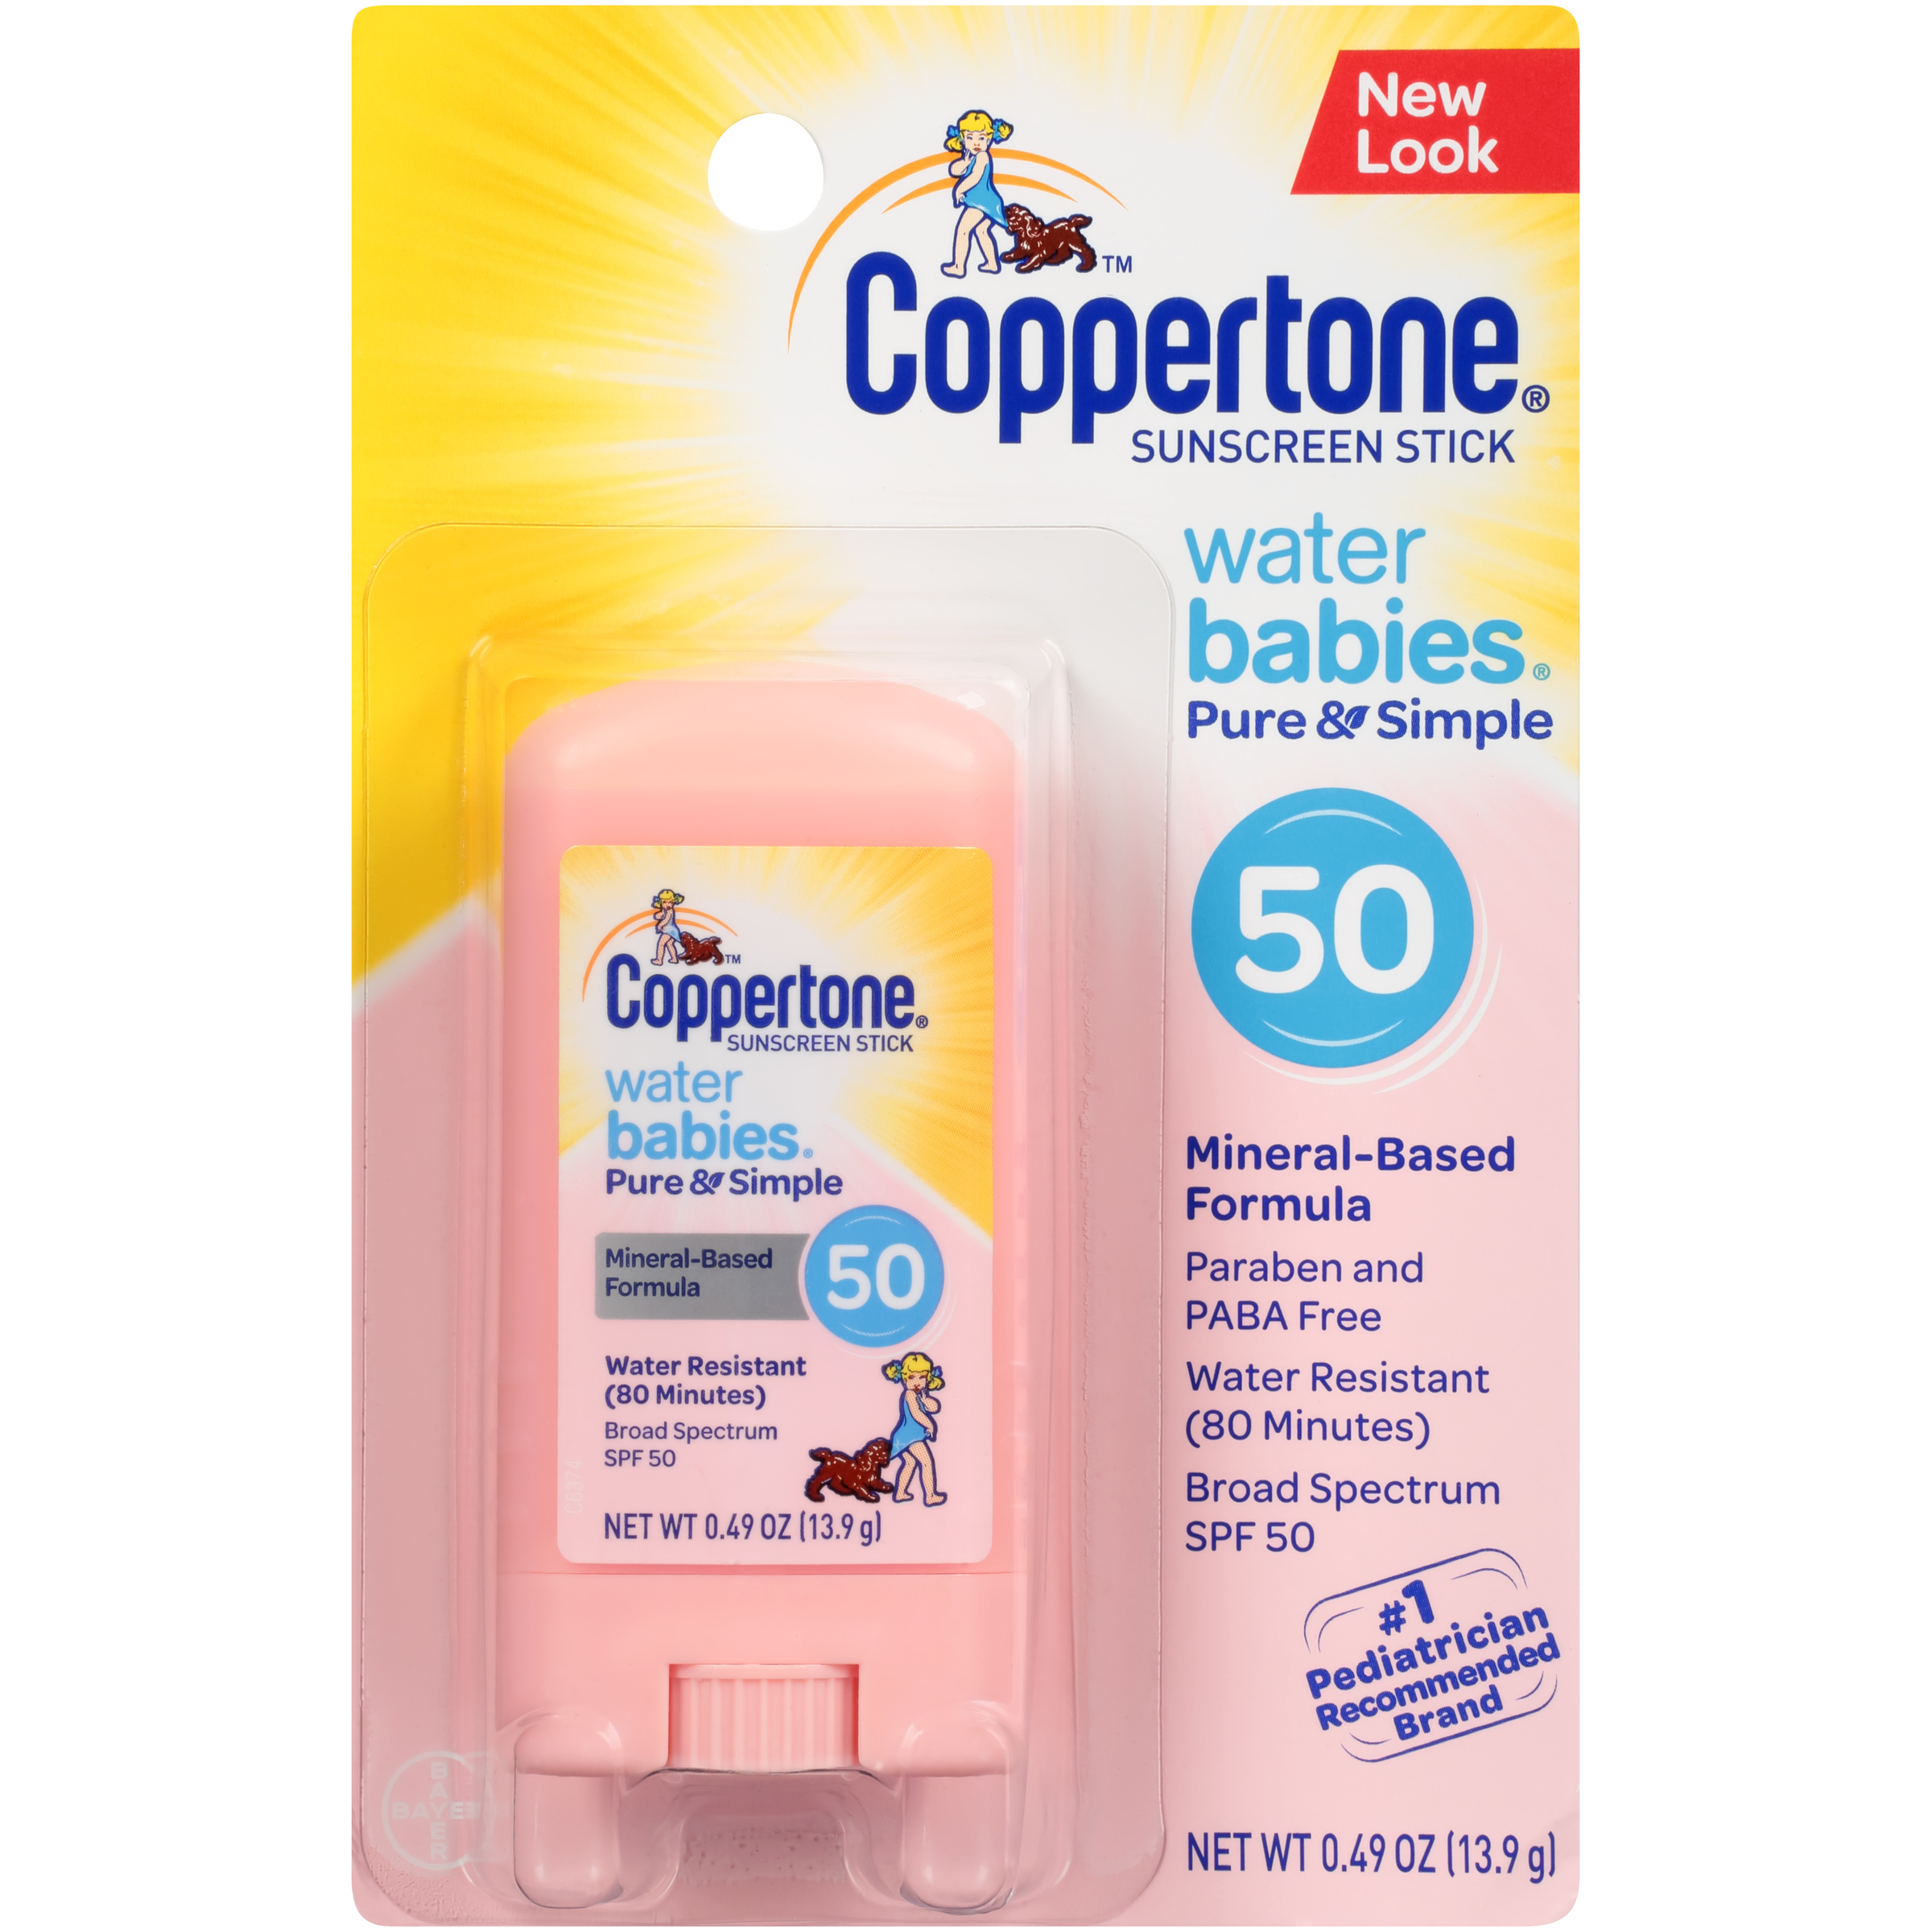 Coppertone WaterBABIES Pure & Simple Baby Mineral Based Stick SPF 50 .5 oz.